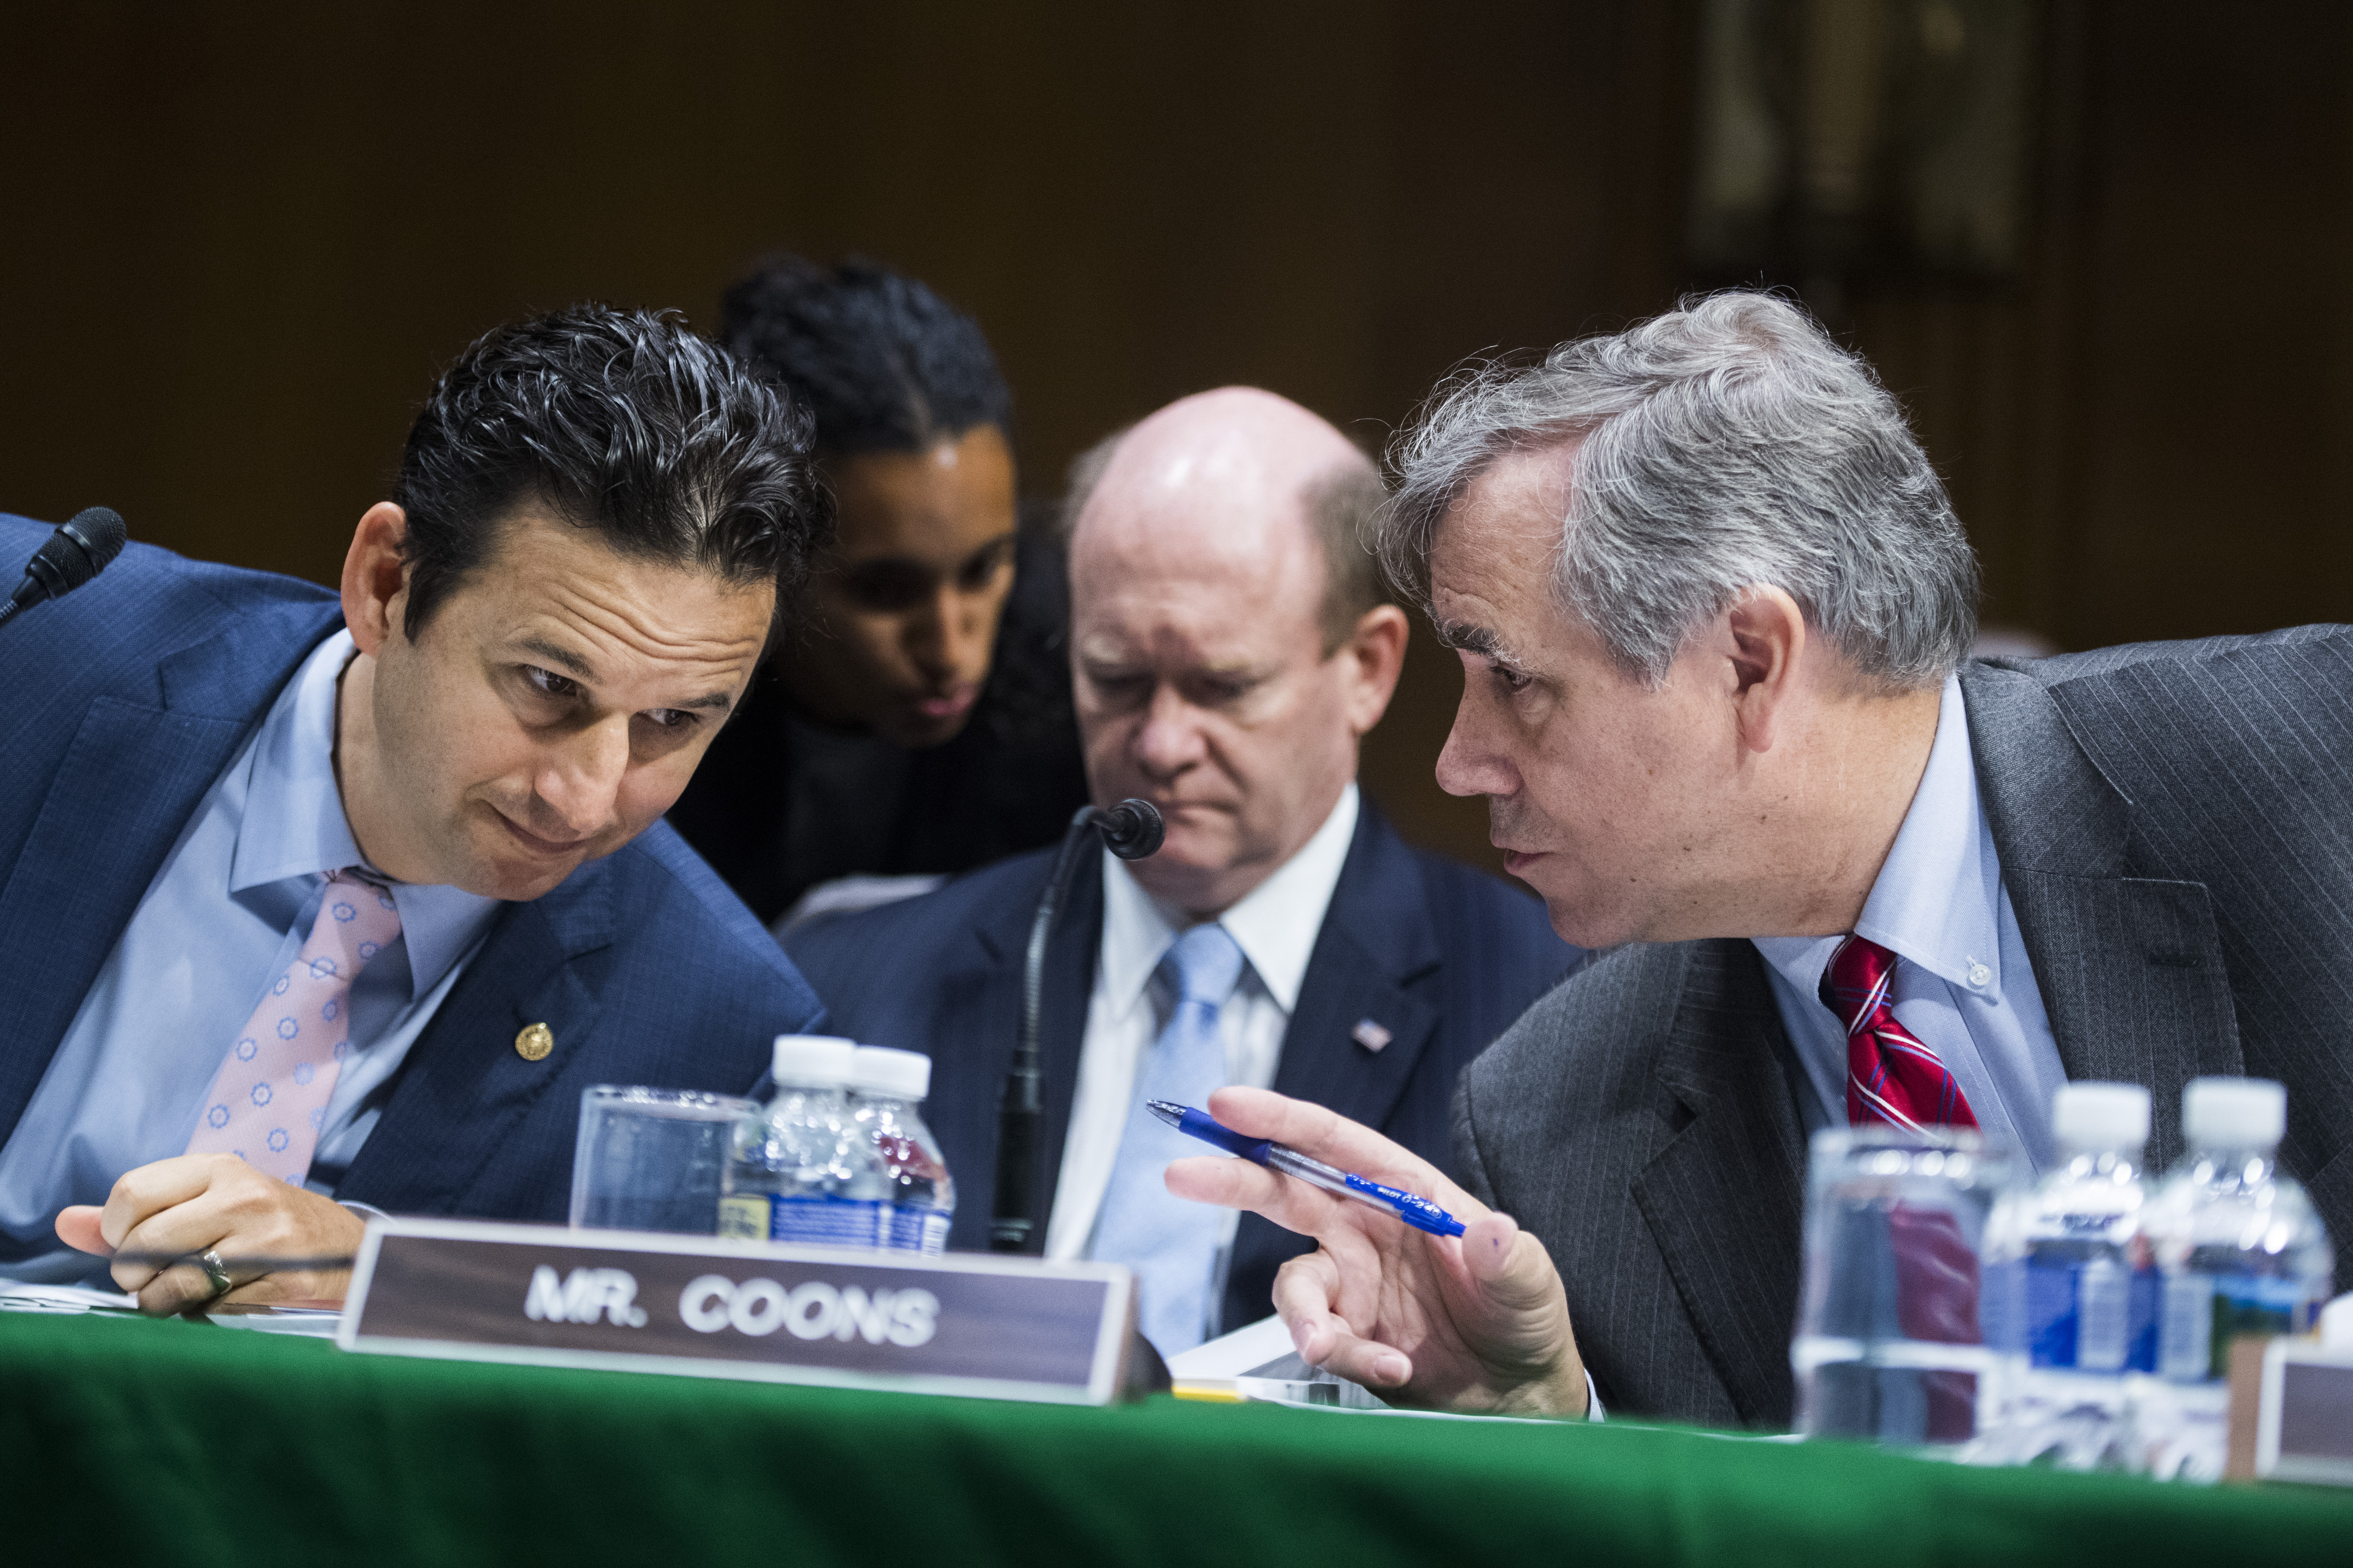 UNITED STATES - JUNE 19: From left, Sens. Brian Schatz, D-Hawaii, Chris Coons, D-Del., and Jeff Merkley, D-Ore., prepare for a Senate Appropriations Committee markup of the Emergency Supplemental Appropriations for Humanitarian Assistance and Security at the Southern Border Act, on Wednesday, June 19, 2019. (Photo By Tom Williams/CQ Roll Call)